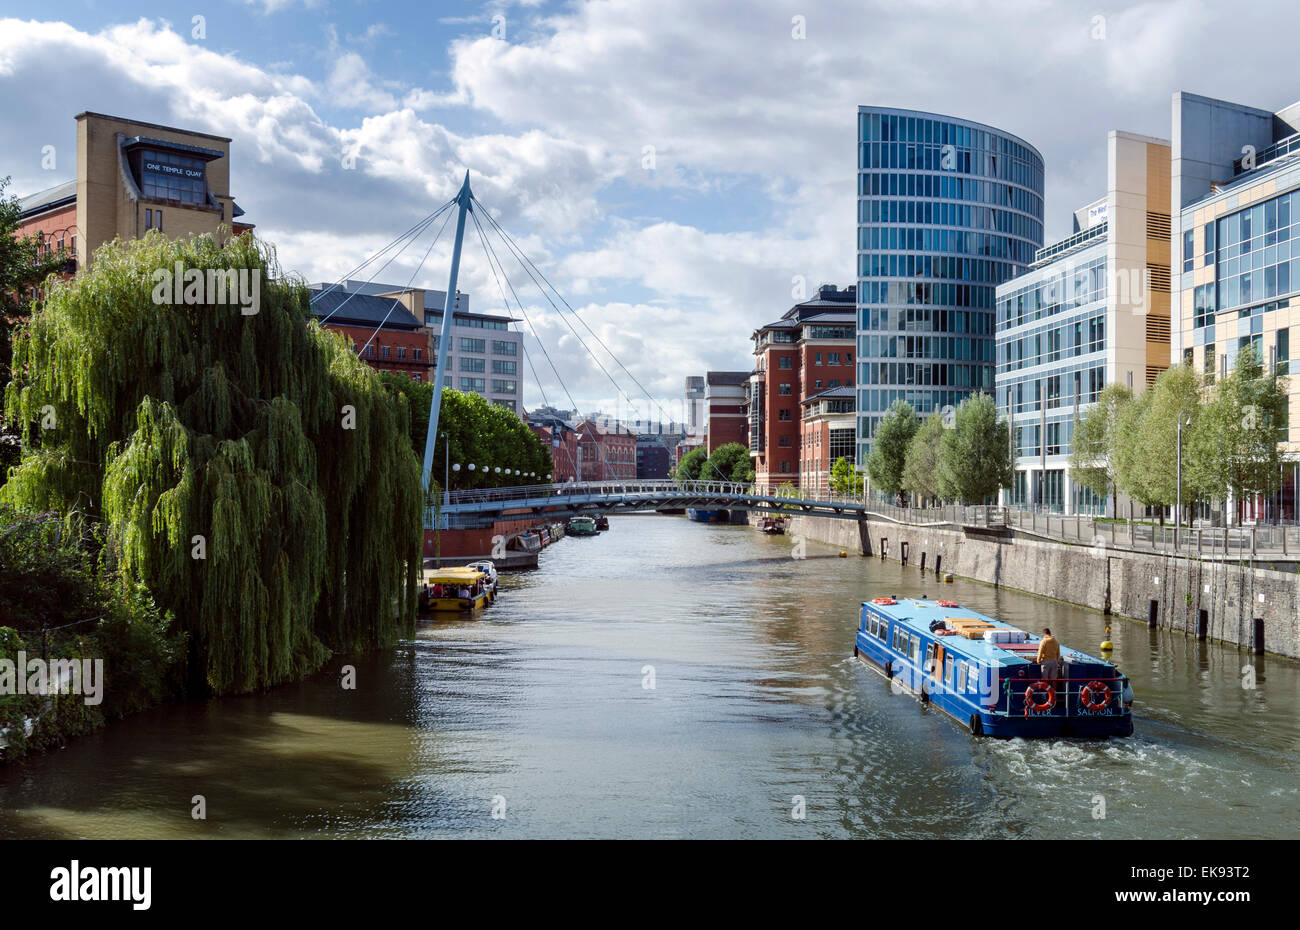 A boat passing under Valentine's Bridge in the Temple Quay area of Bristol, with its mix of old and modern architecture. - Stock Image